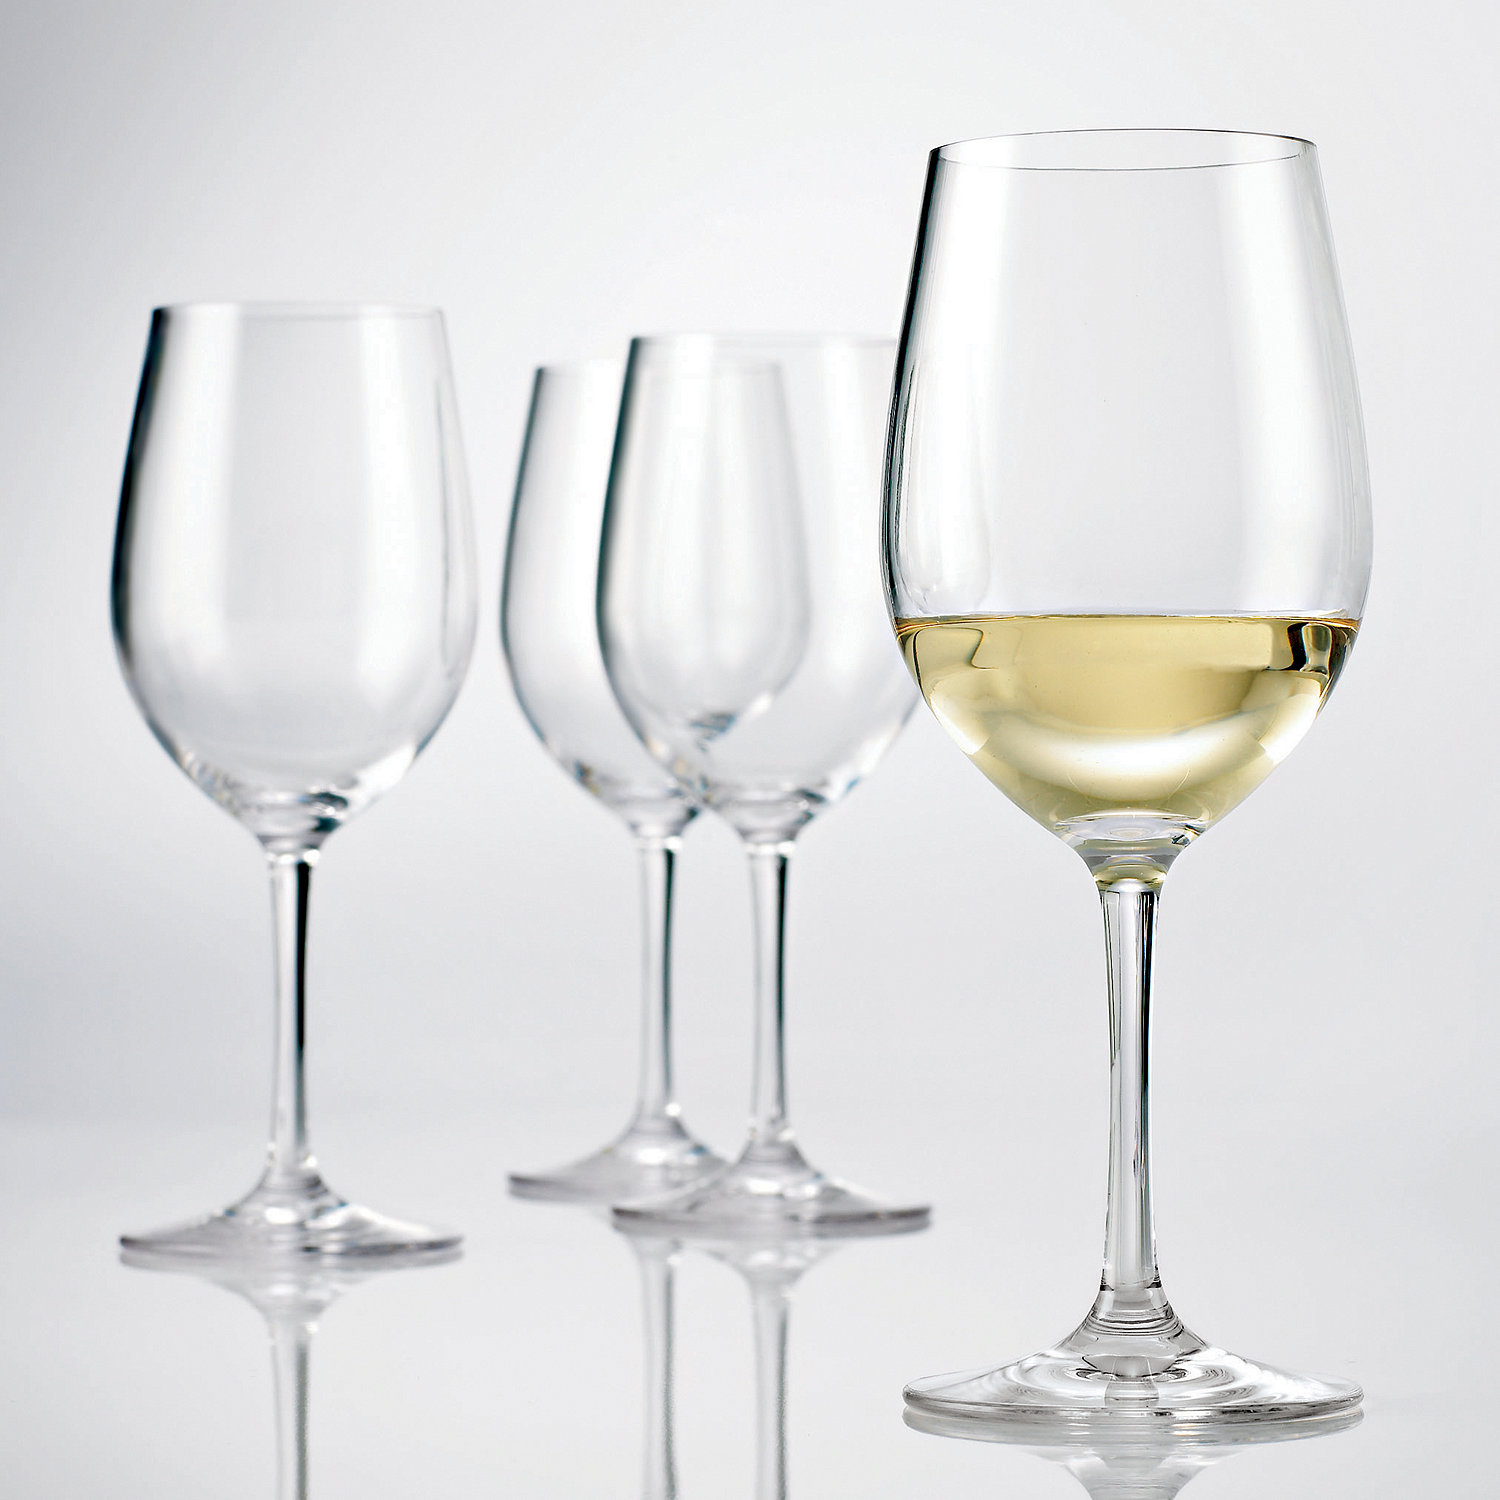 Chardonnay Wine Glass Wine Enthusiast 4 Pc Indoor Outdoor Chardonnay Wine Glass Set